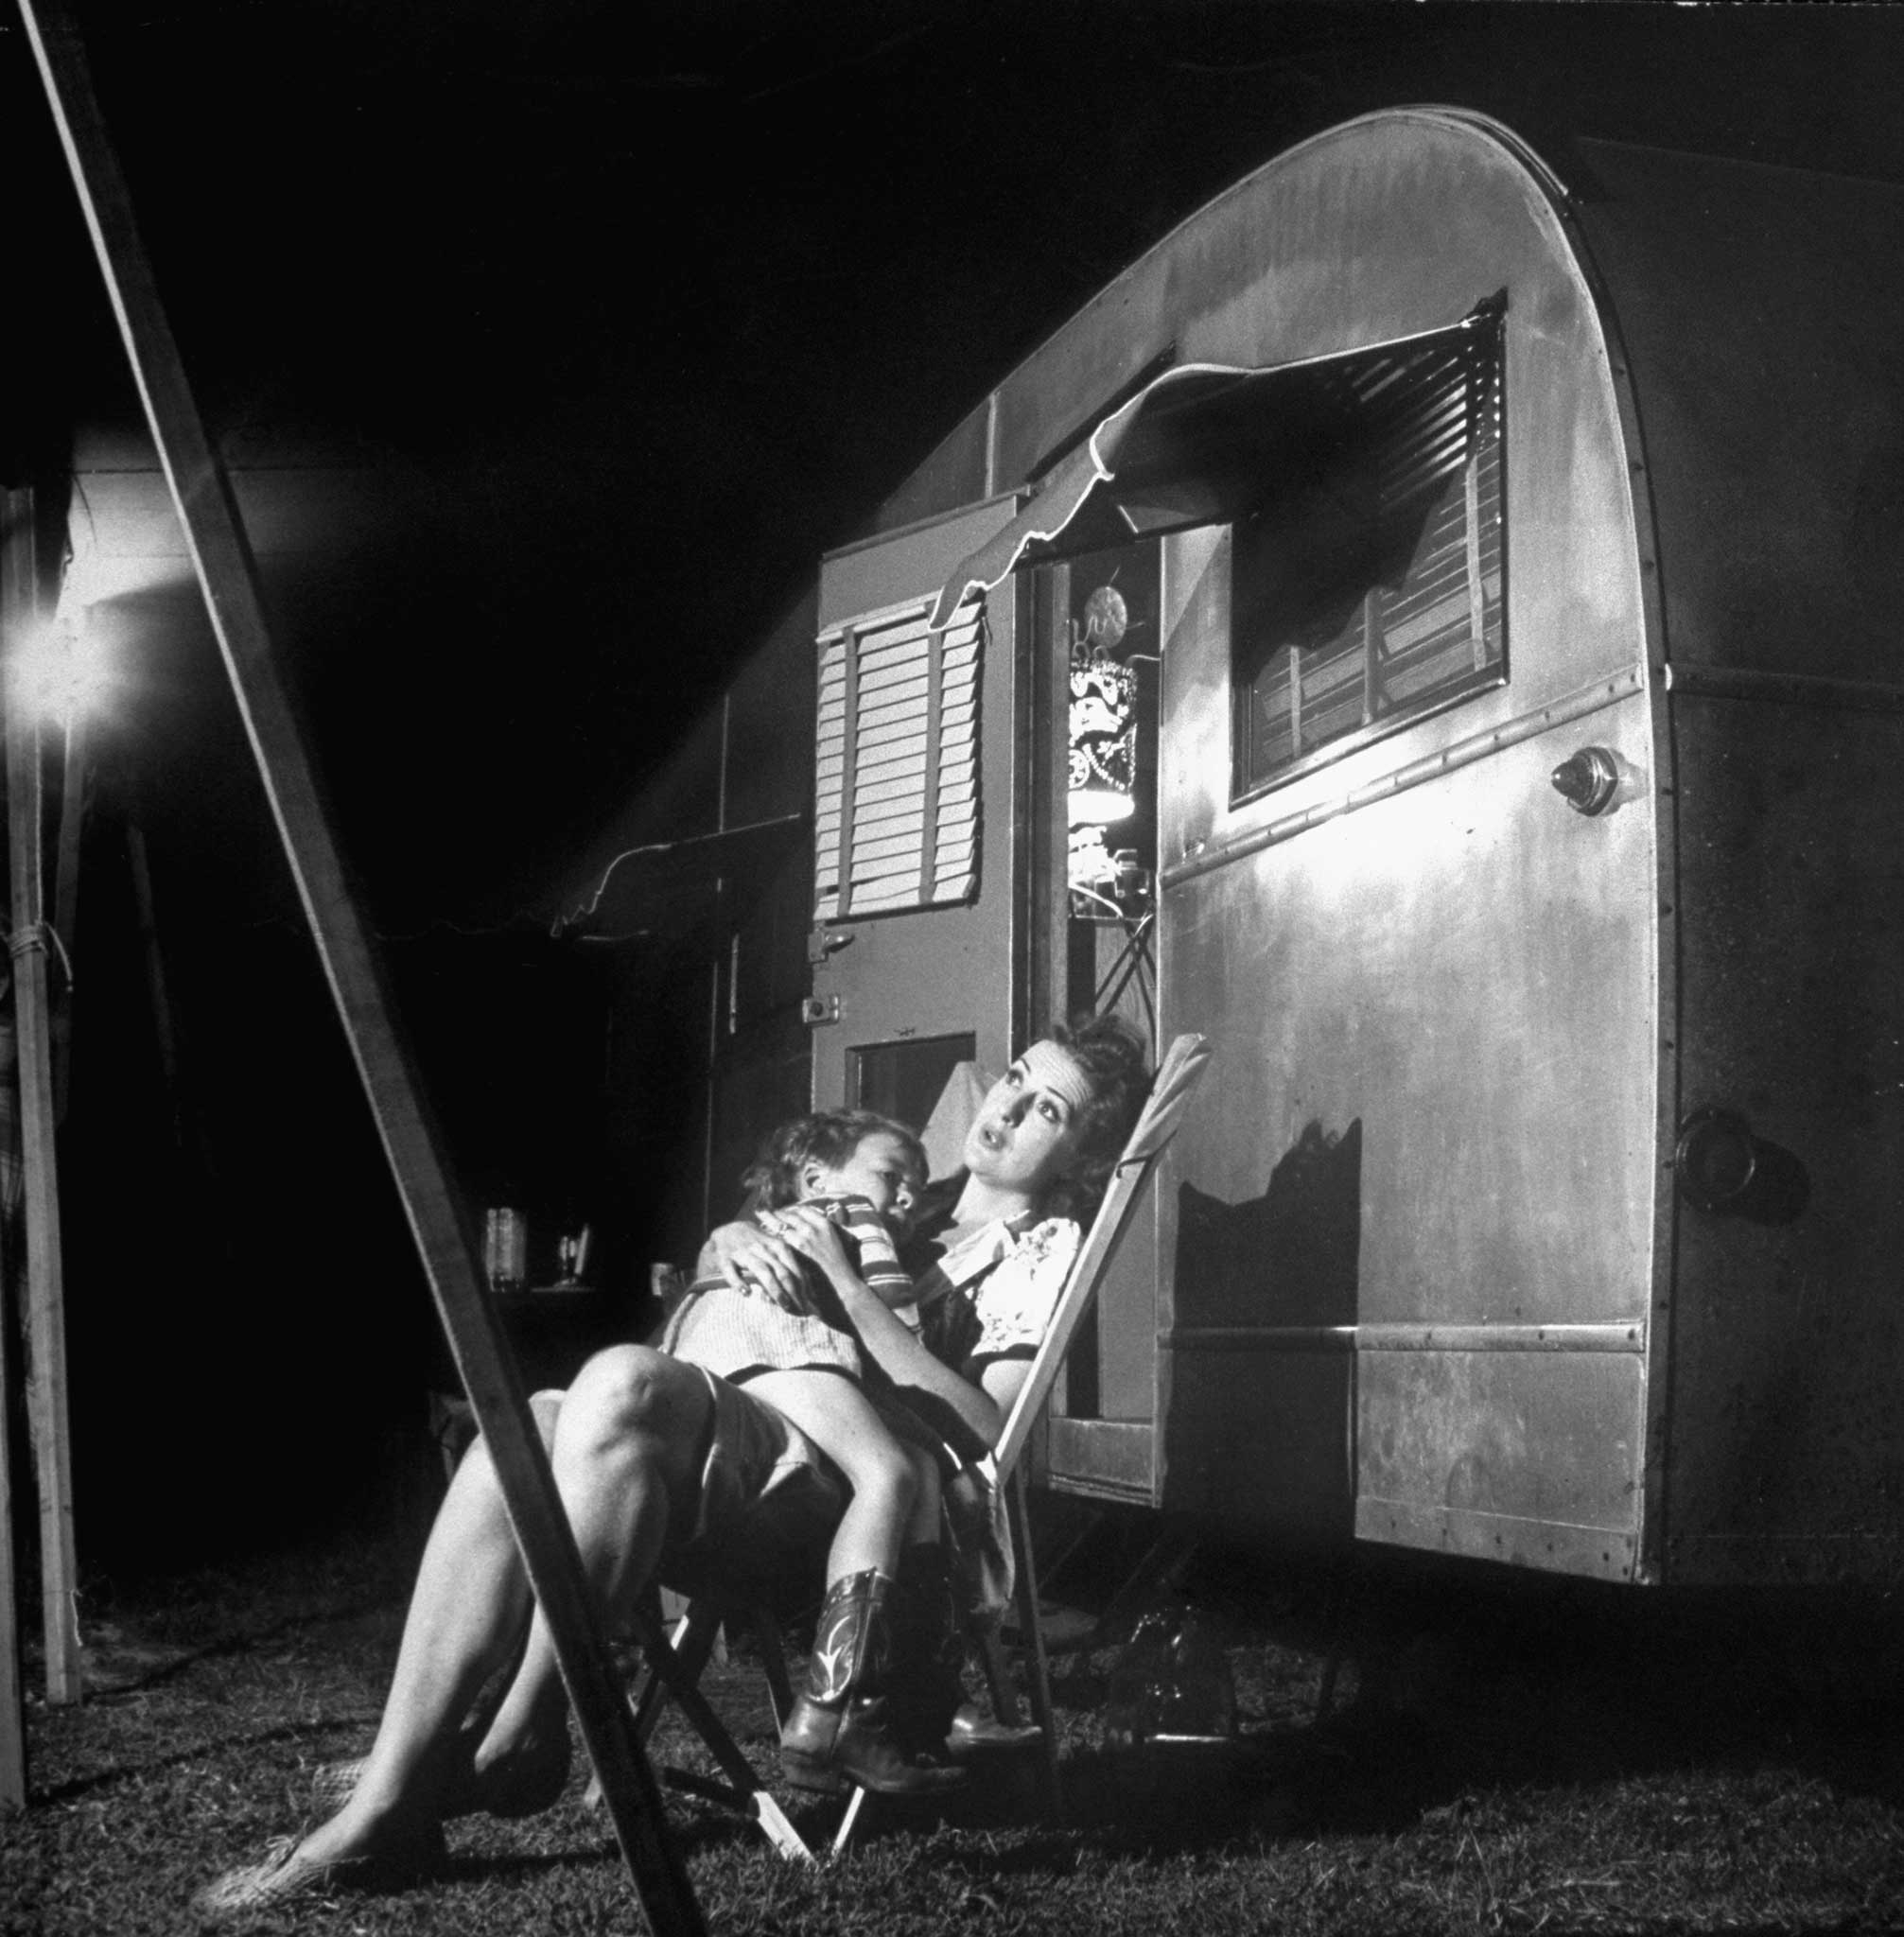 <b>Not published in LIFE.</b> Gypsy Rose Lee holds her 4-year-old son (by Otto Preminger), Erik, outside of her trailer, 1949.